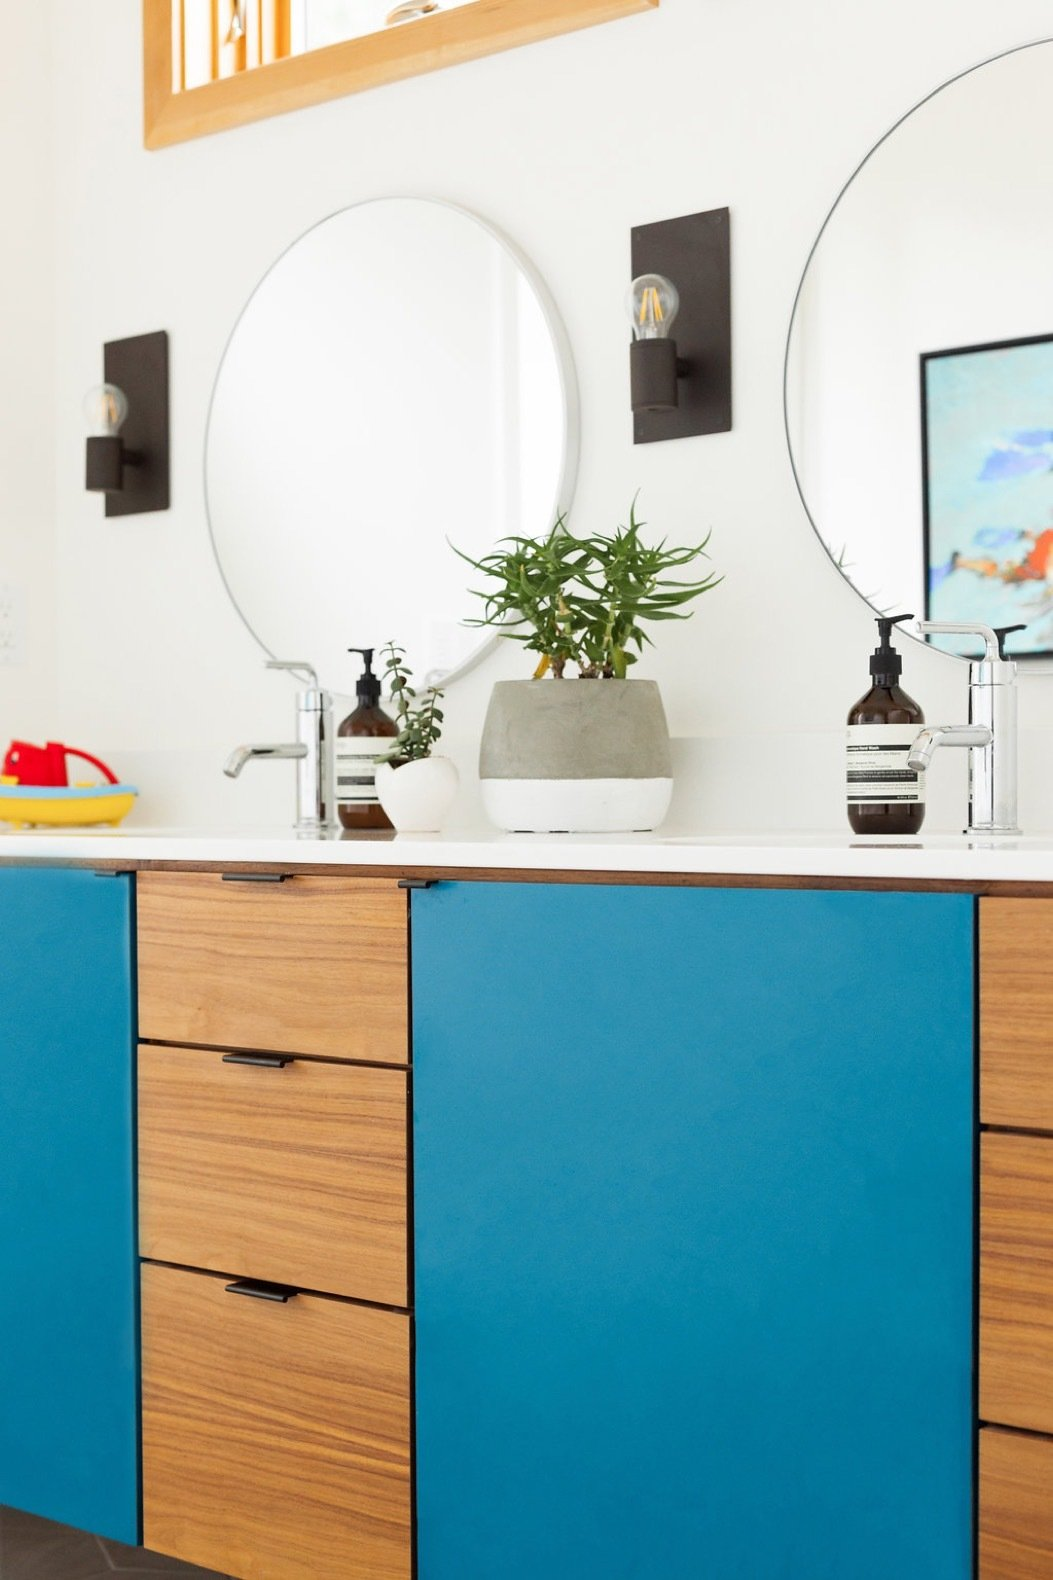 all-bathroom-counters-are-pental-quartz-in-color-bq200p-super-white-and-are-complemented-with-walls-painted-in-benjamin-moore-simply-white-oc-117.jpg